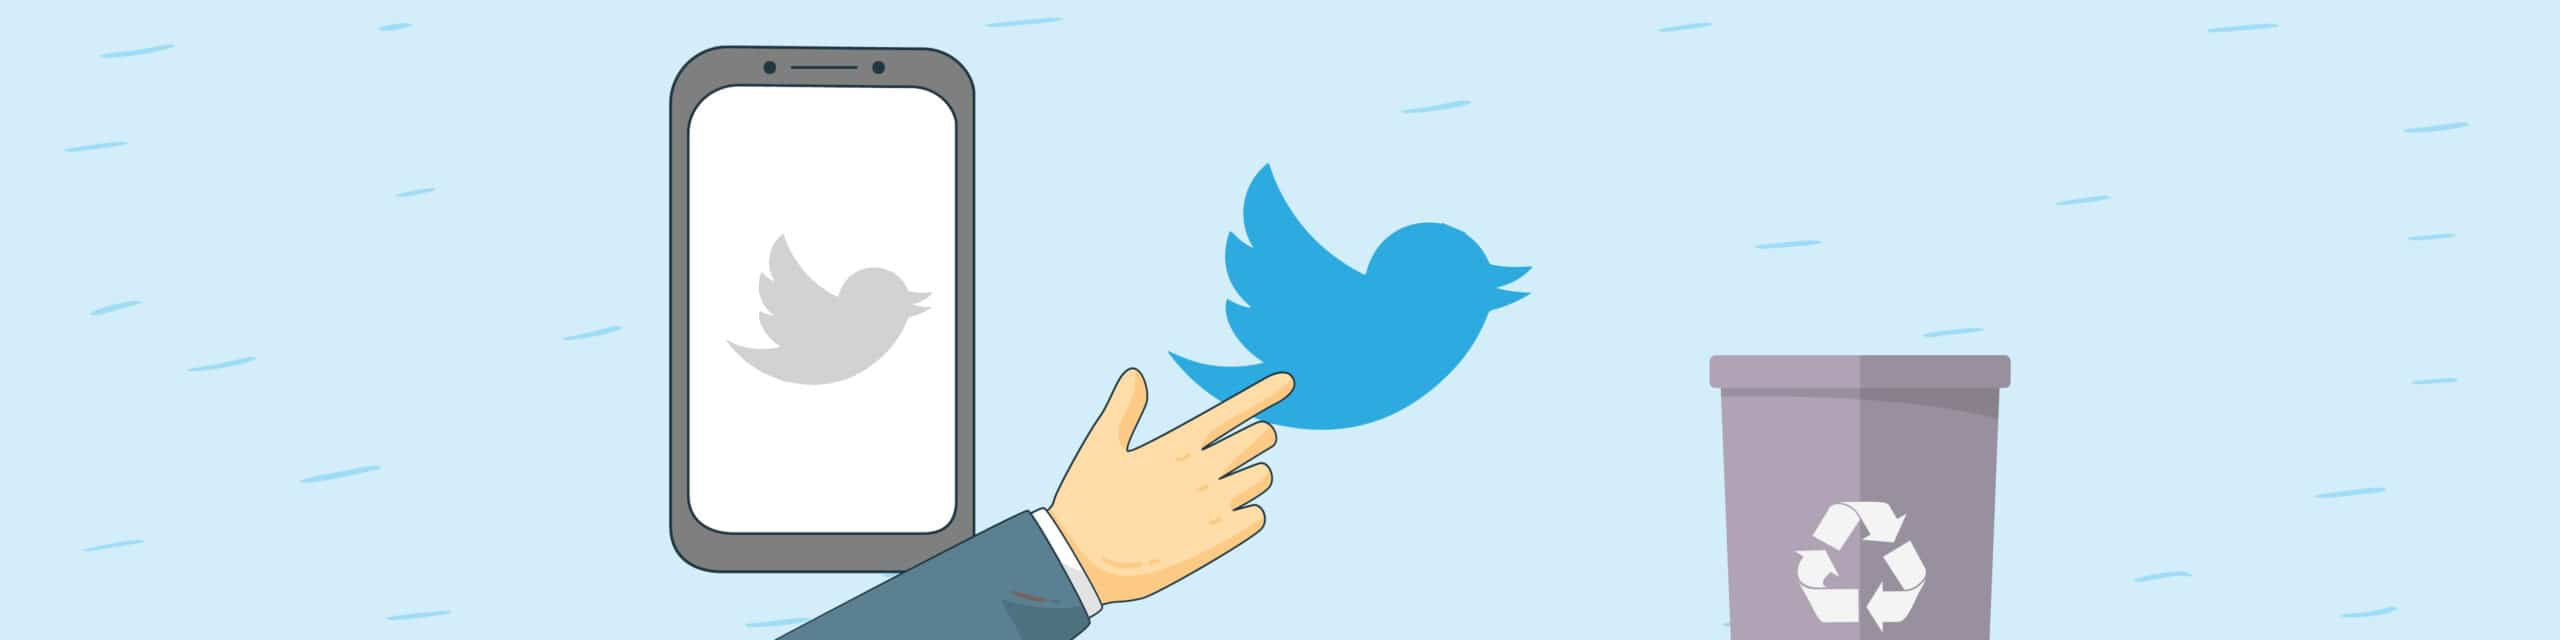 How to delete your twitter account-01